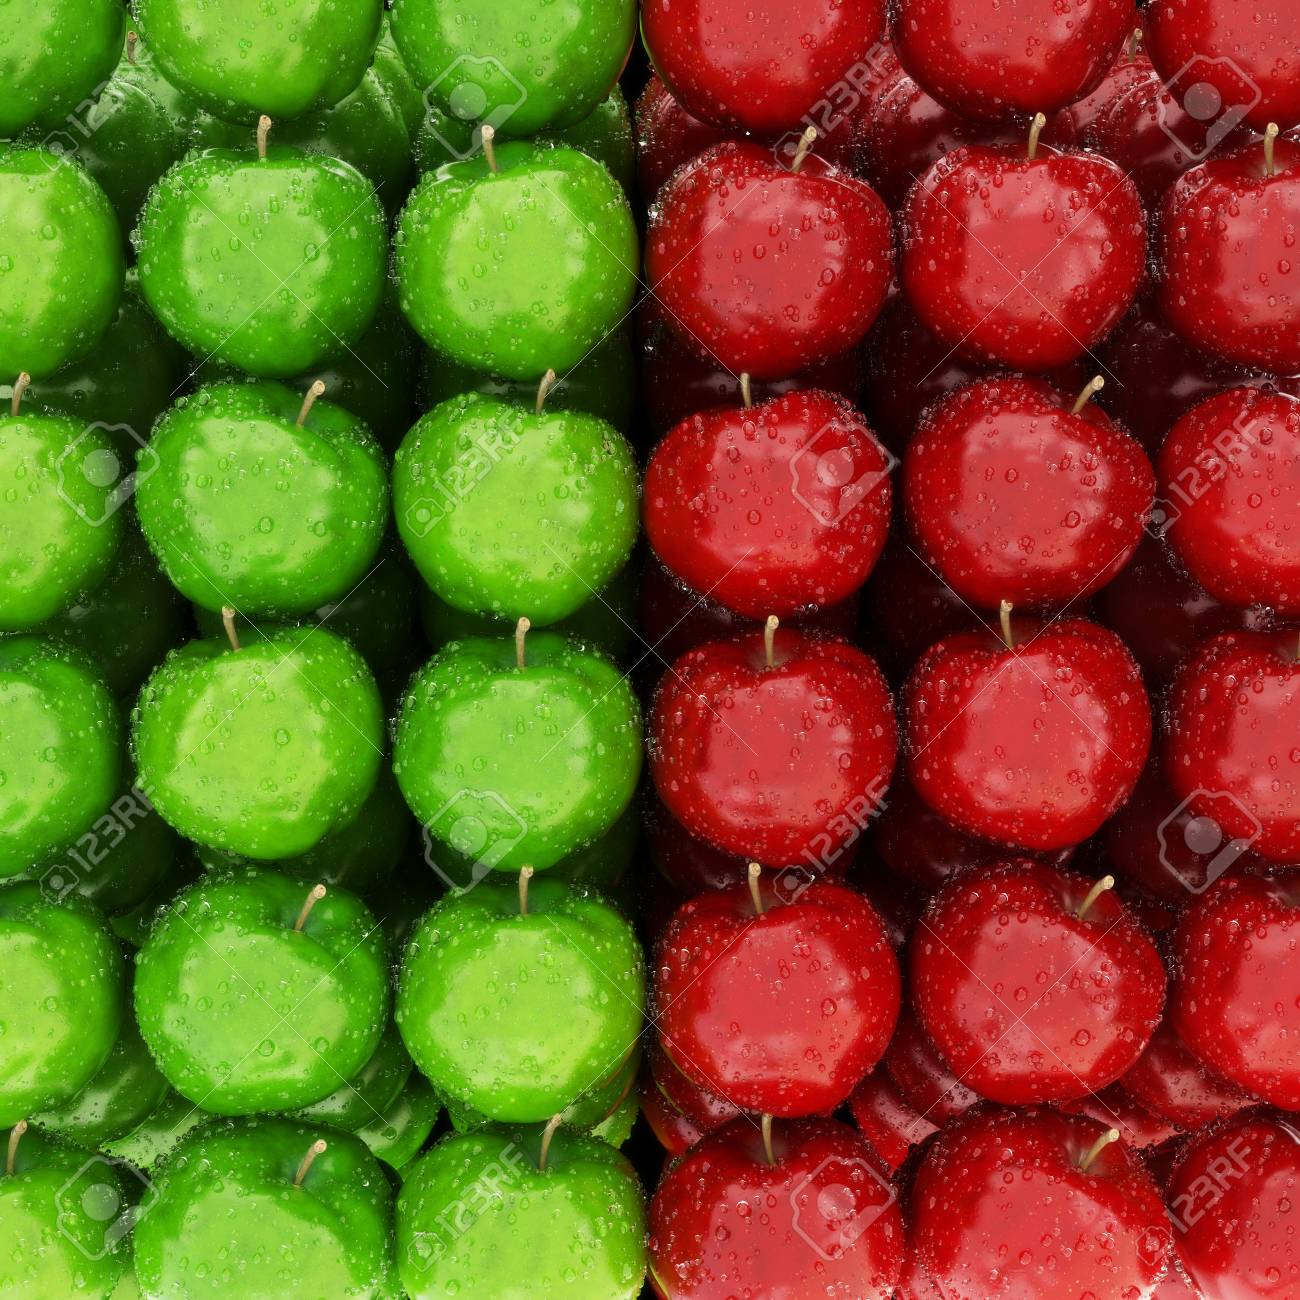 Row of red and green wet apples Stock Photo - 25284389